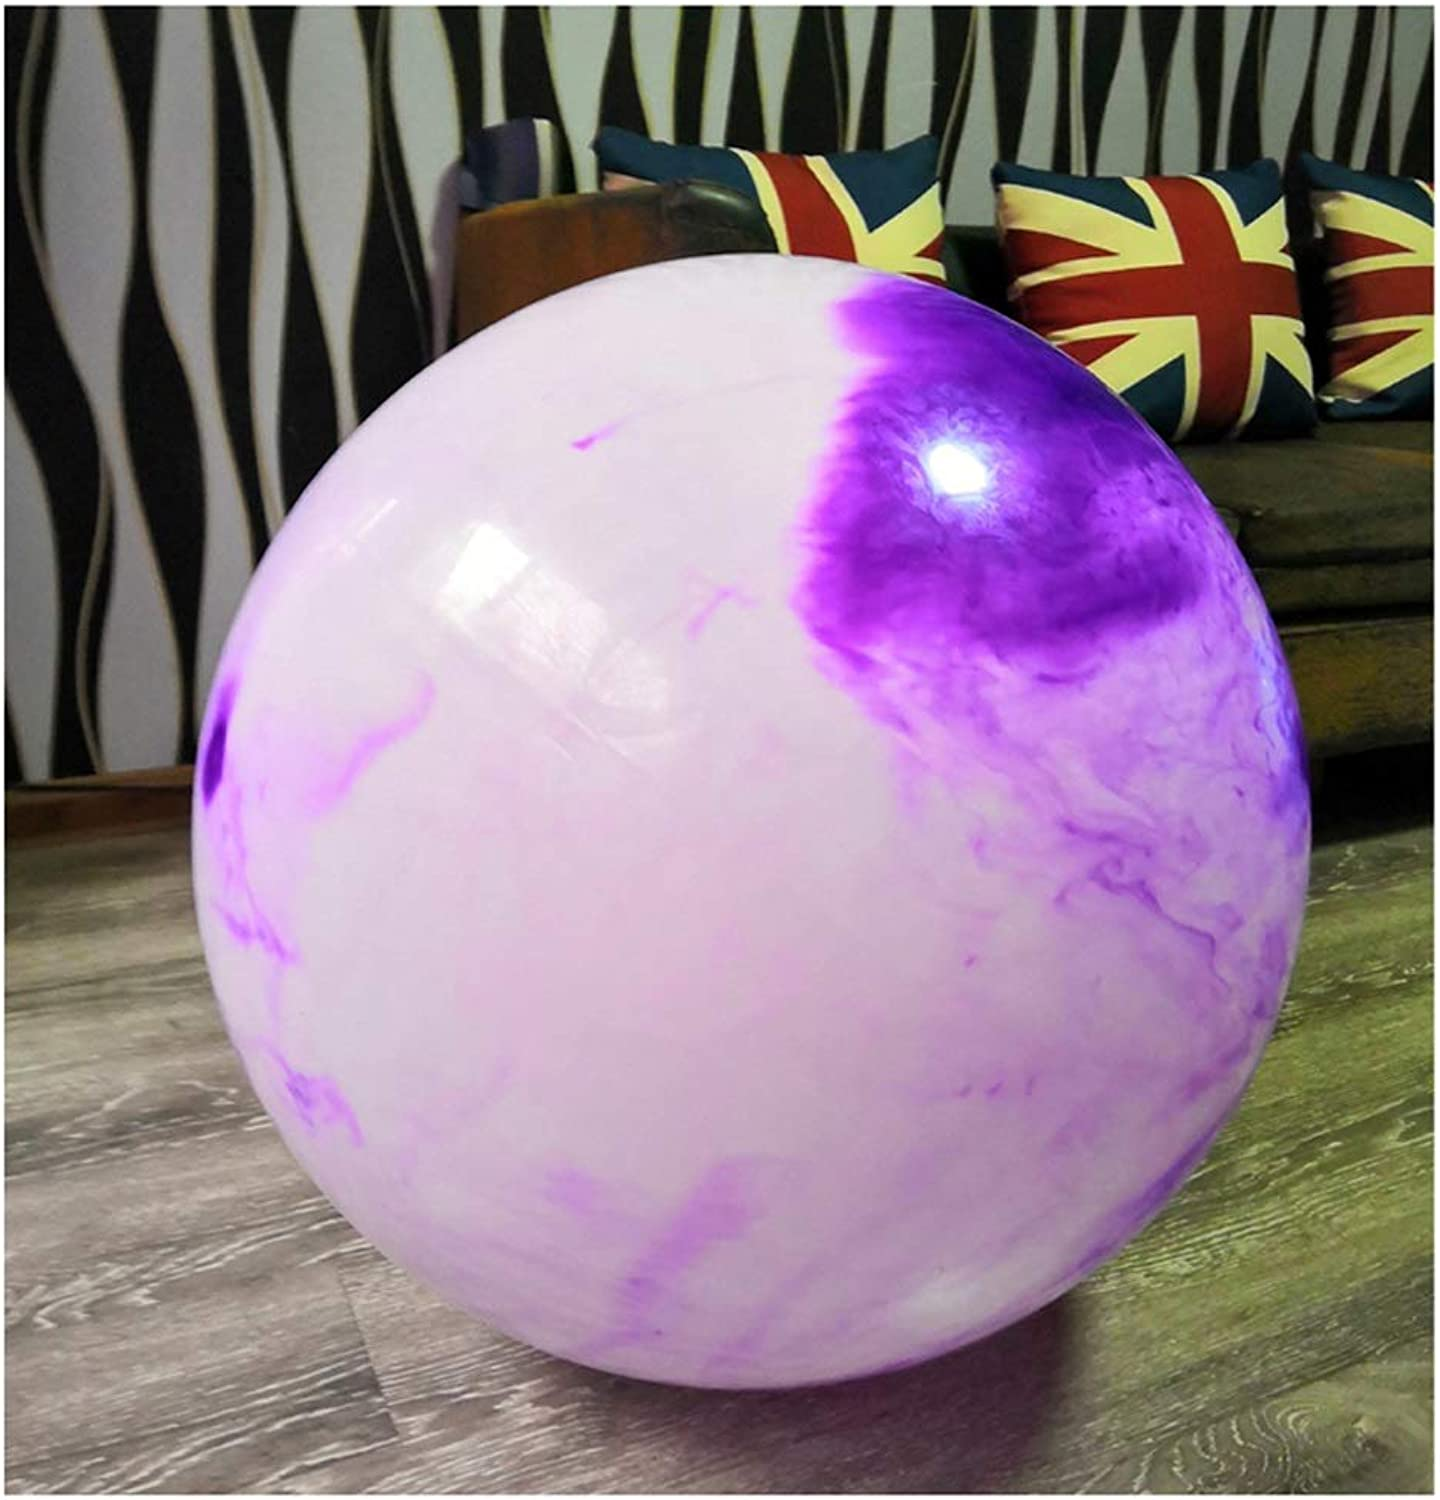 Exercise Ball (Multiple color) Yoga Ball Birthing Ball with Quick Pump AntiBurst & Extra Thick Heavy Duty Ball Chair Stability Ball Supports 200kg 55cm